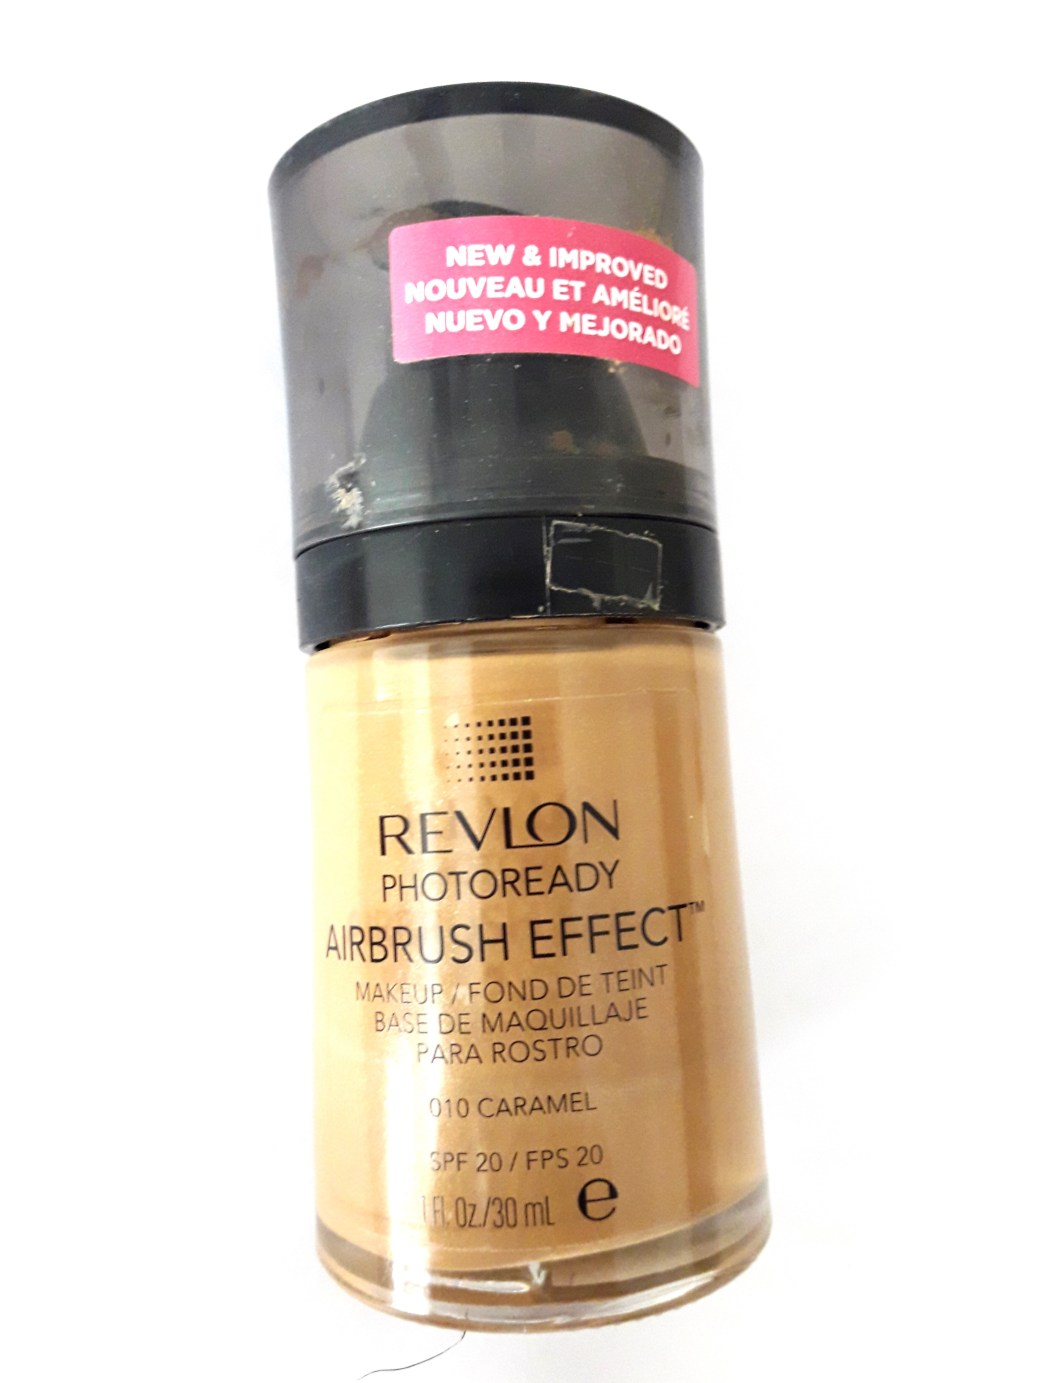 Revlon Photoready Airbrush Effect Makeup Foundation Review Swatches